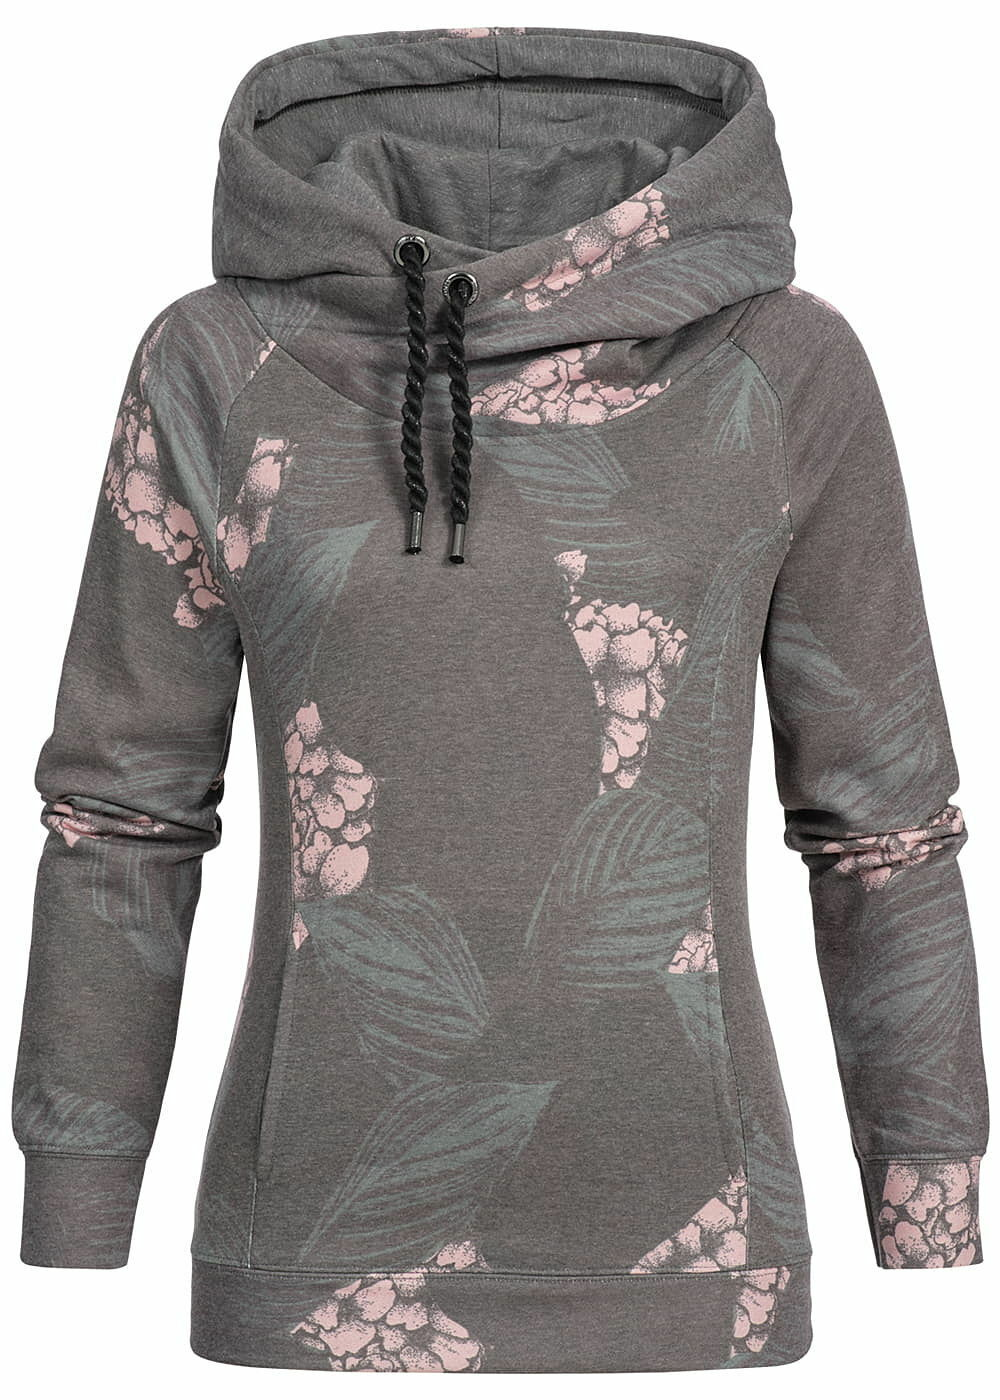 B19010221 Womens ONLY JUMPER HOODIE Floral Pattern Kalamata Olive Green